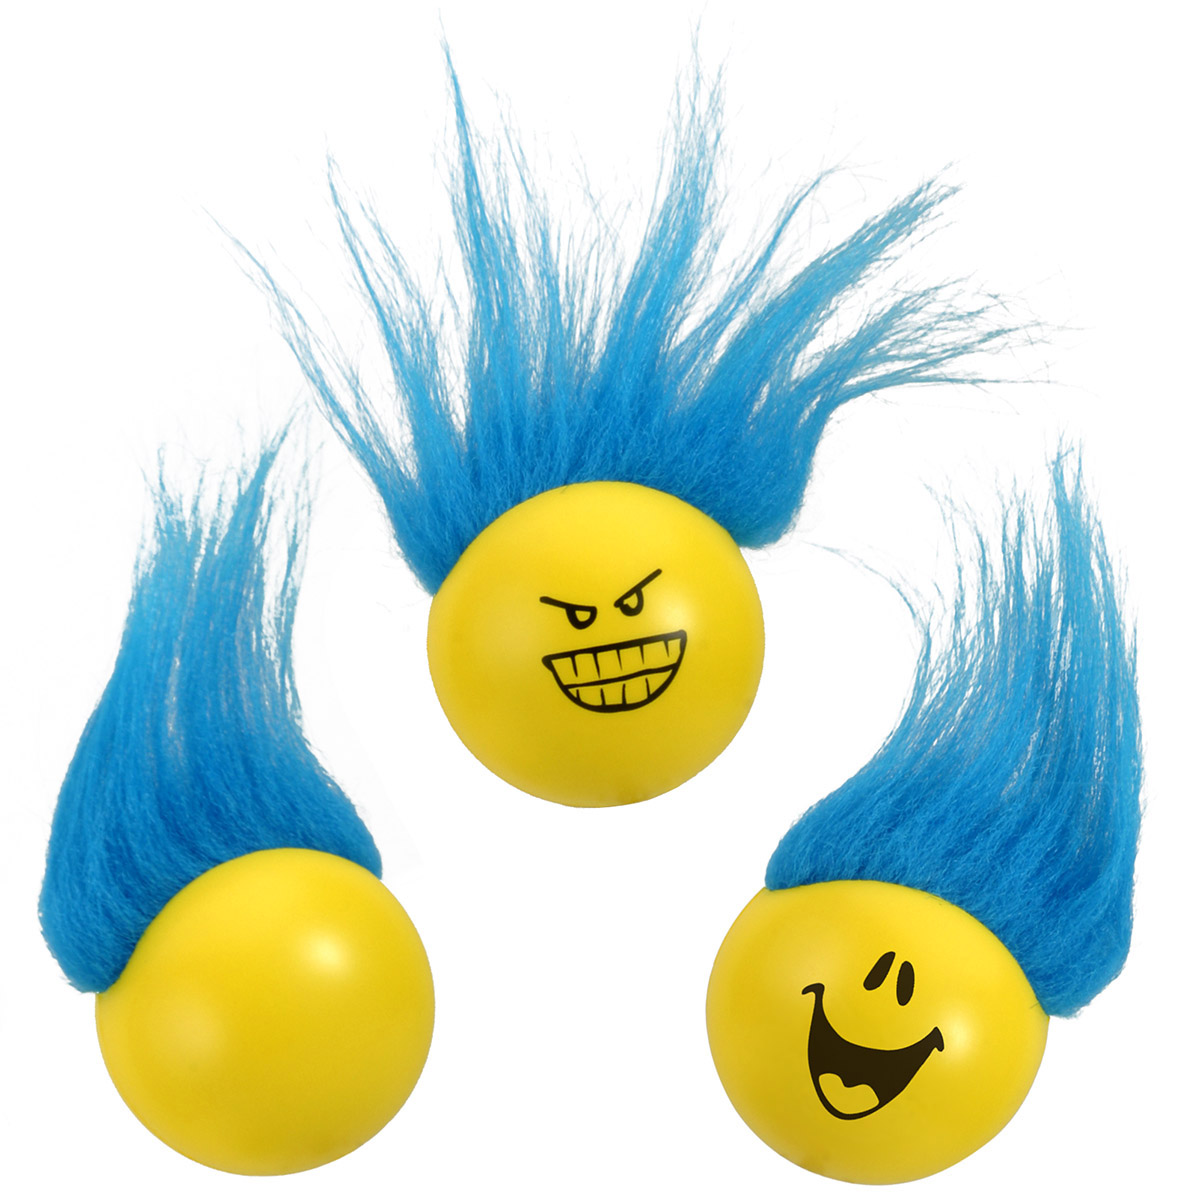 Troll Stress Reliever Ball, LSB-TB06 - 1 Colour Imprint